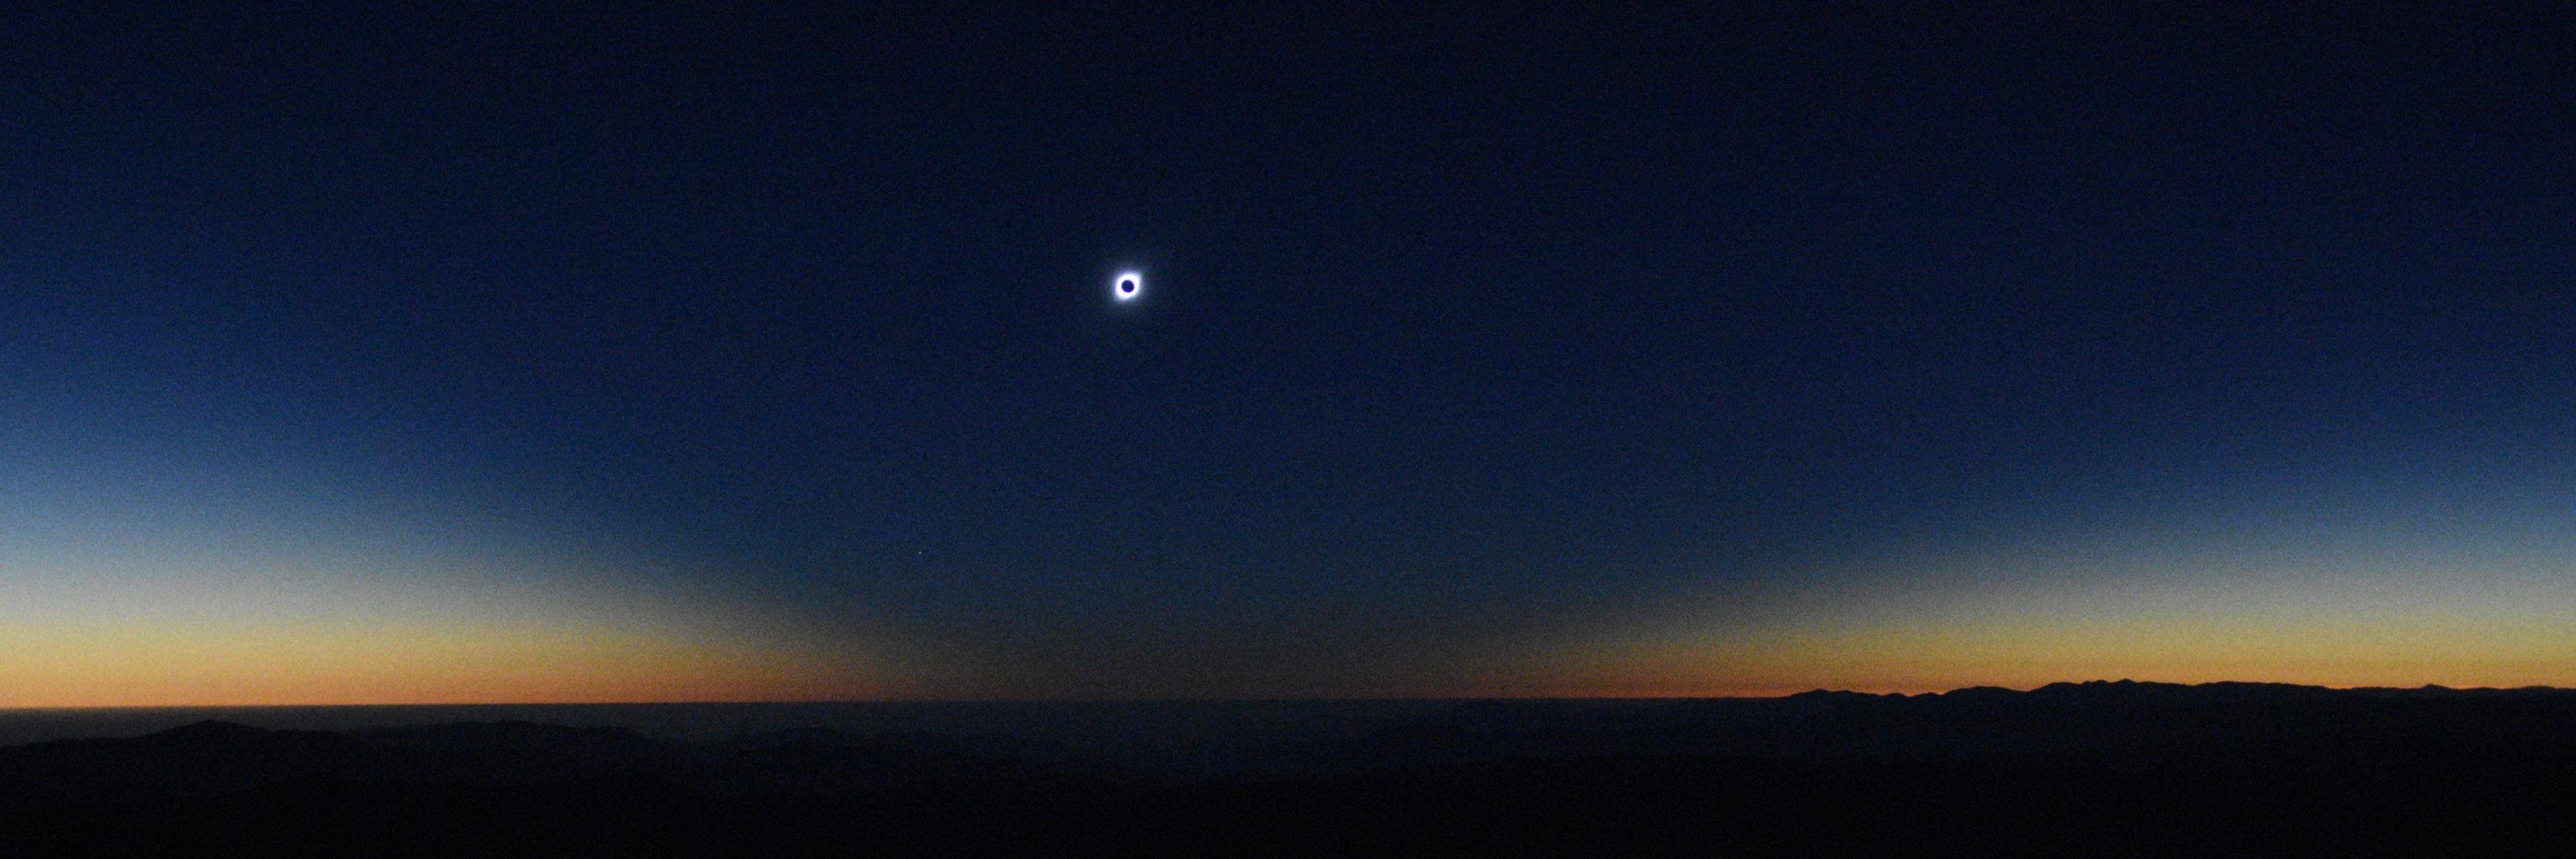 A two-minute totality, an opportunity of a lifetime | Penn Today